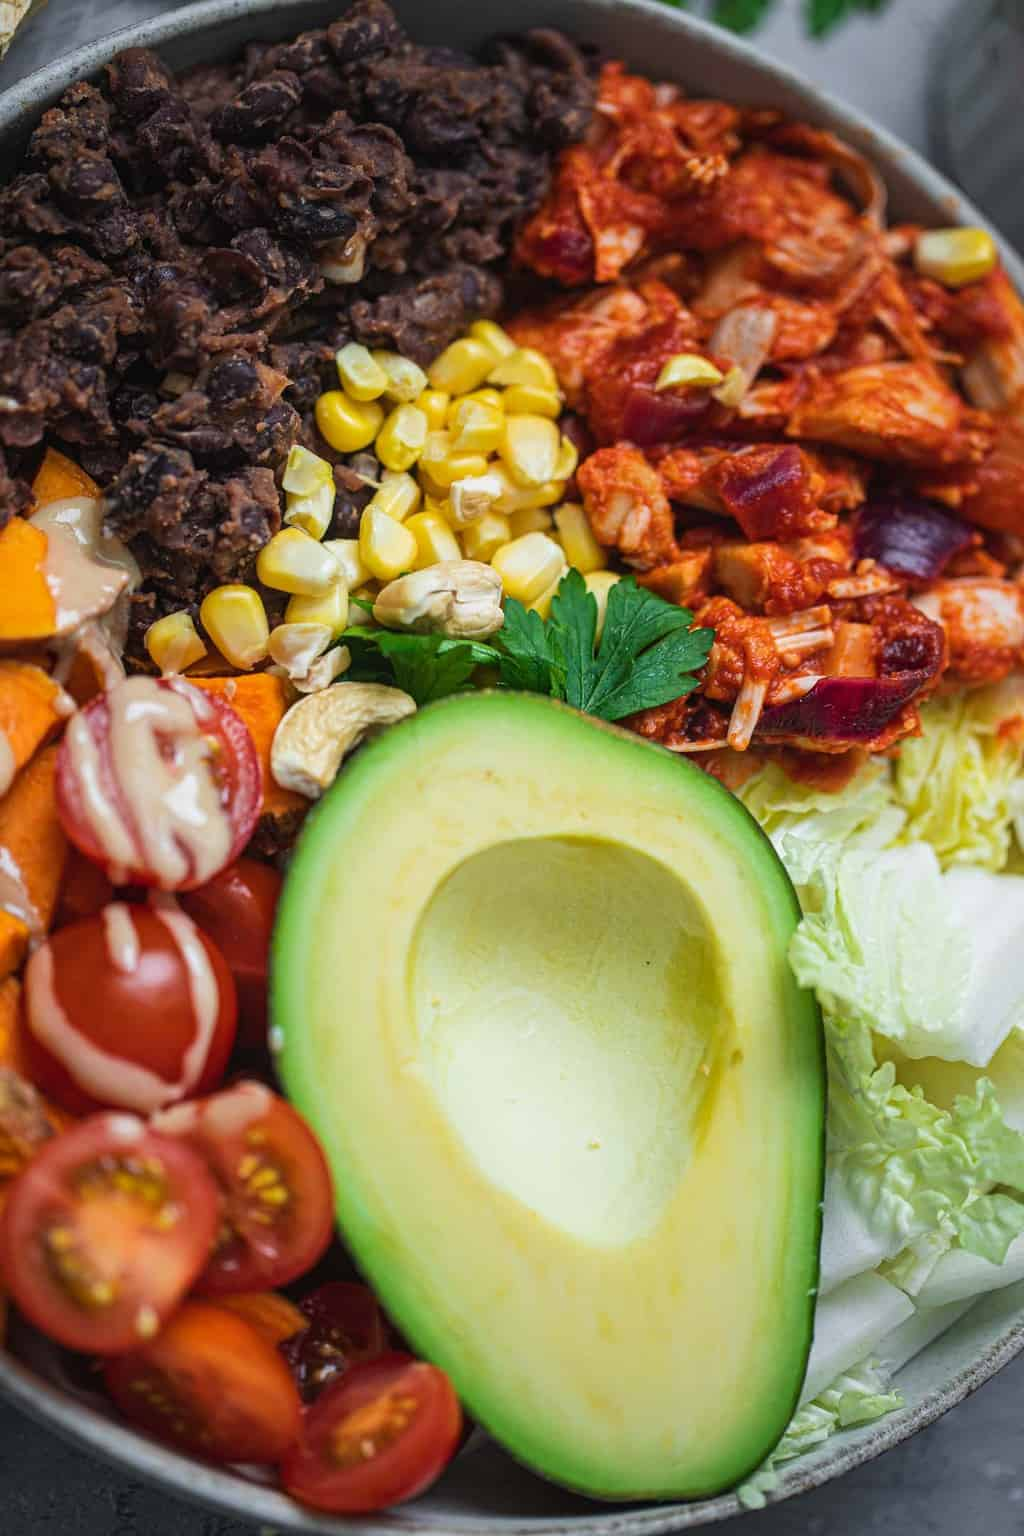 Burrito bowl with avocado, sweetcorn, jackfruit, lettuce tomatoes, refried beans and tahini